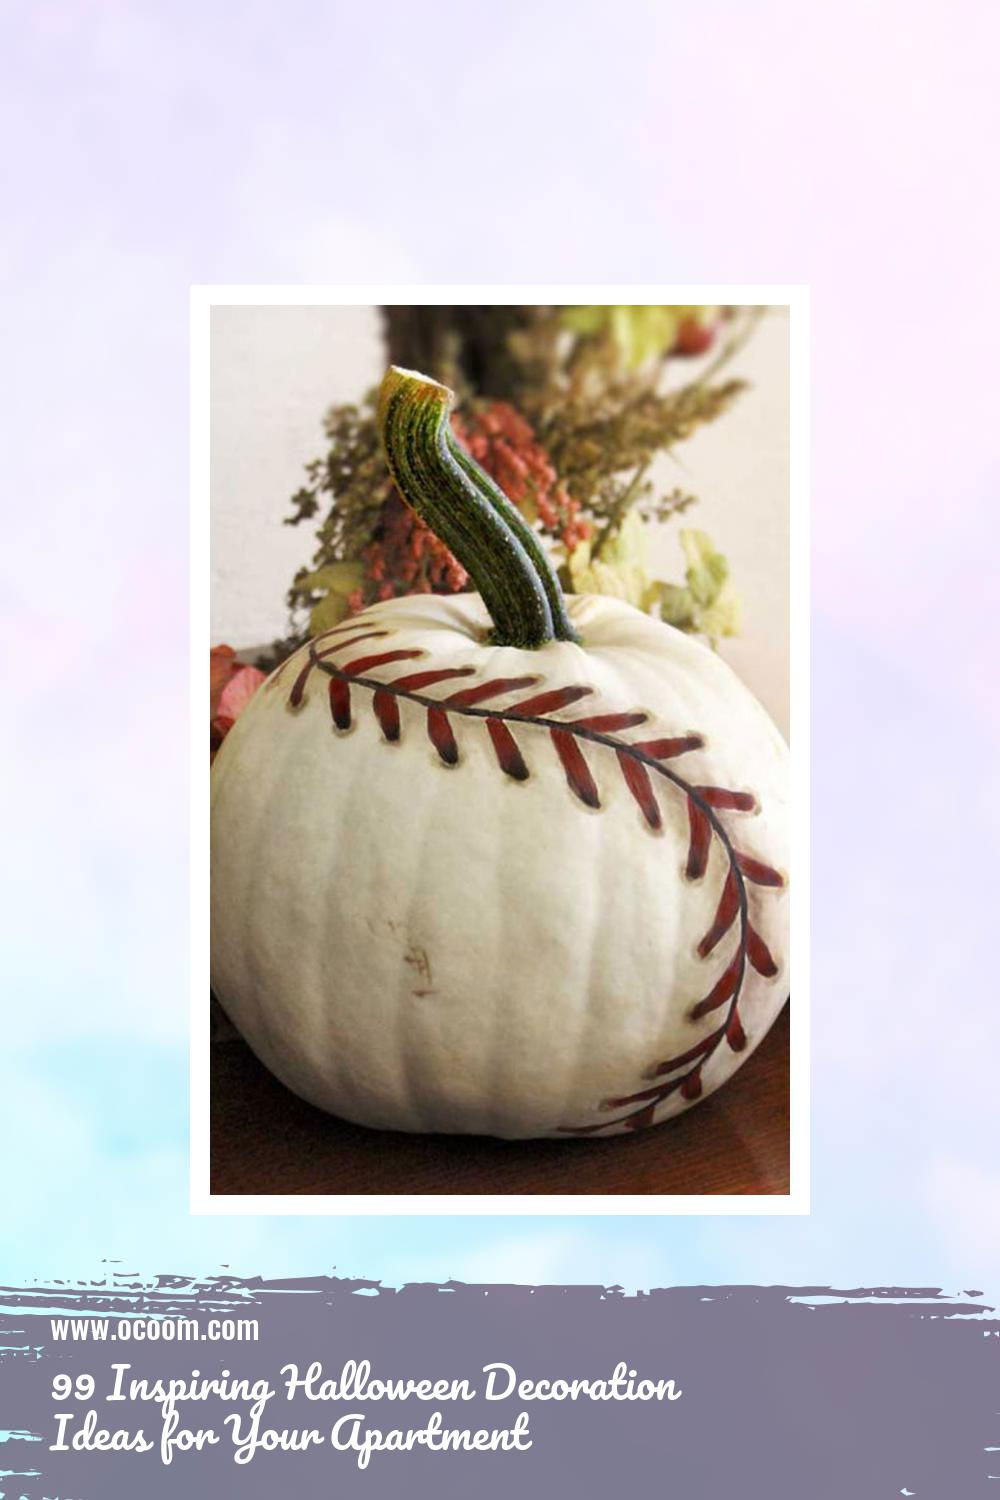 99 Inspiring Halloween Decoration Ideas for Your Apartment 57